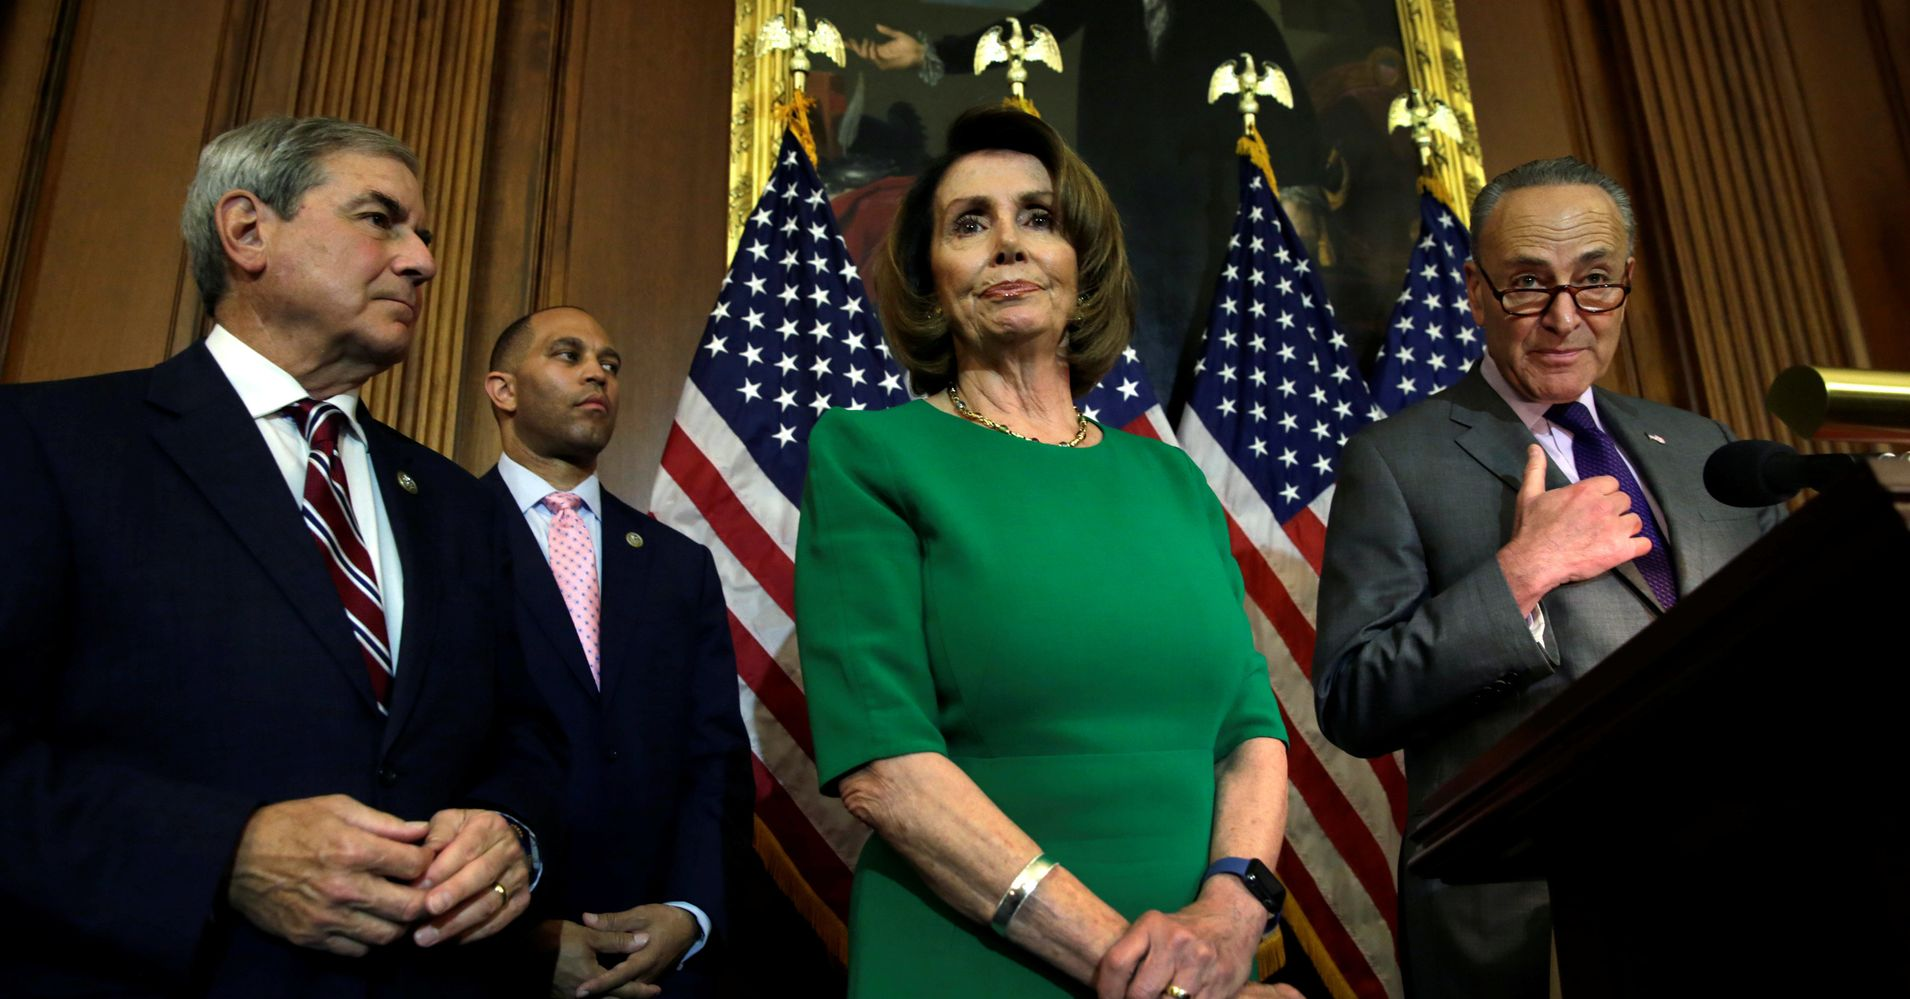 Democrats Have A Growing Edge Over GOP In Party Affiliation